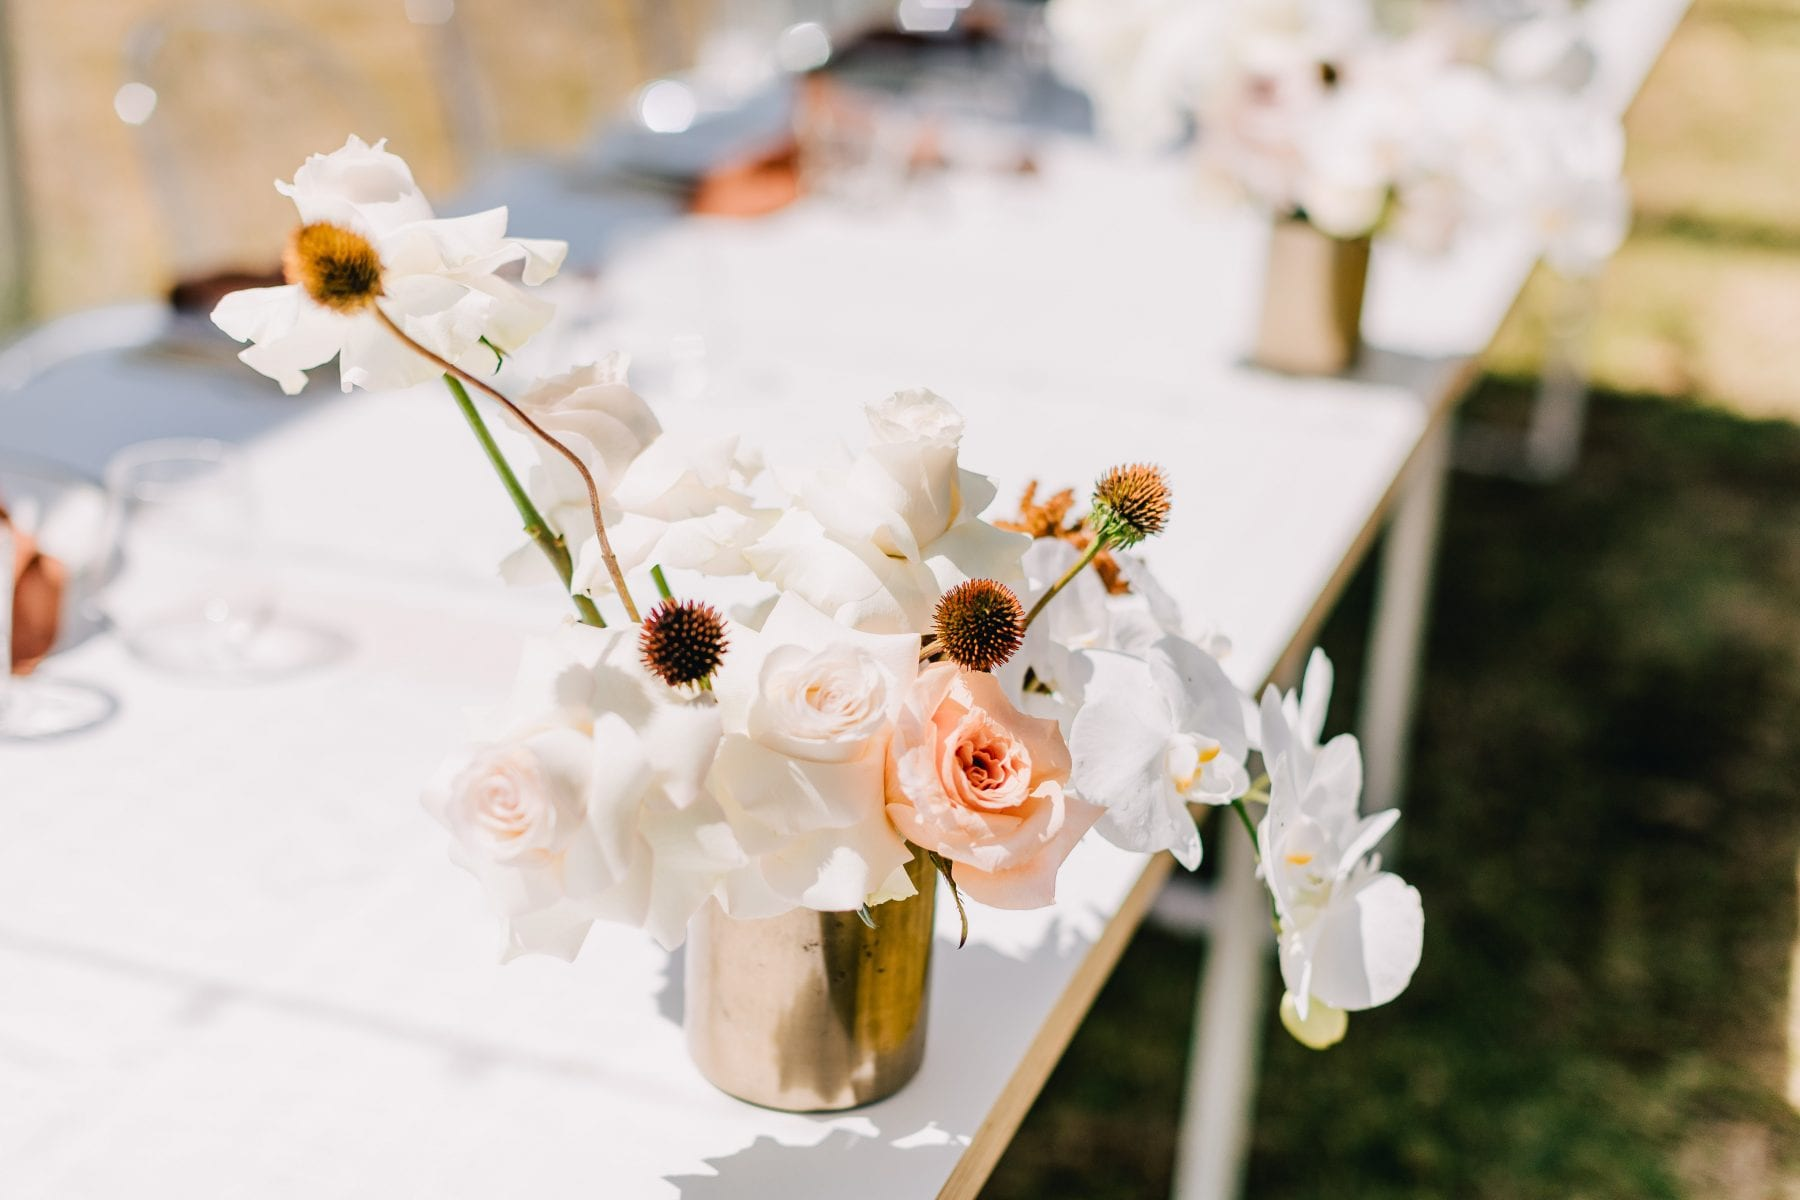 On My Hand Tauranga wedding florist - fresh and dried meets modern - table arrangements